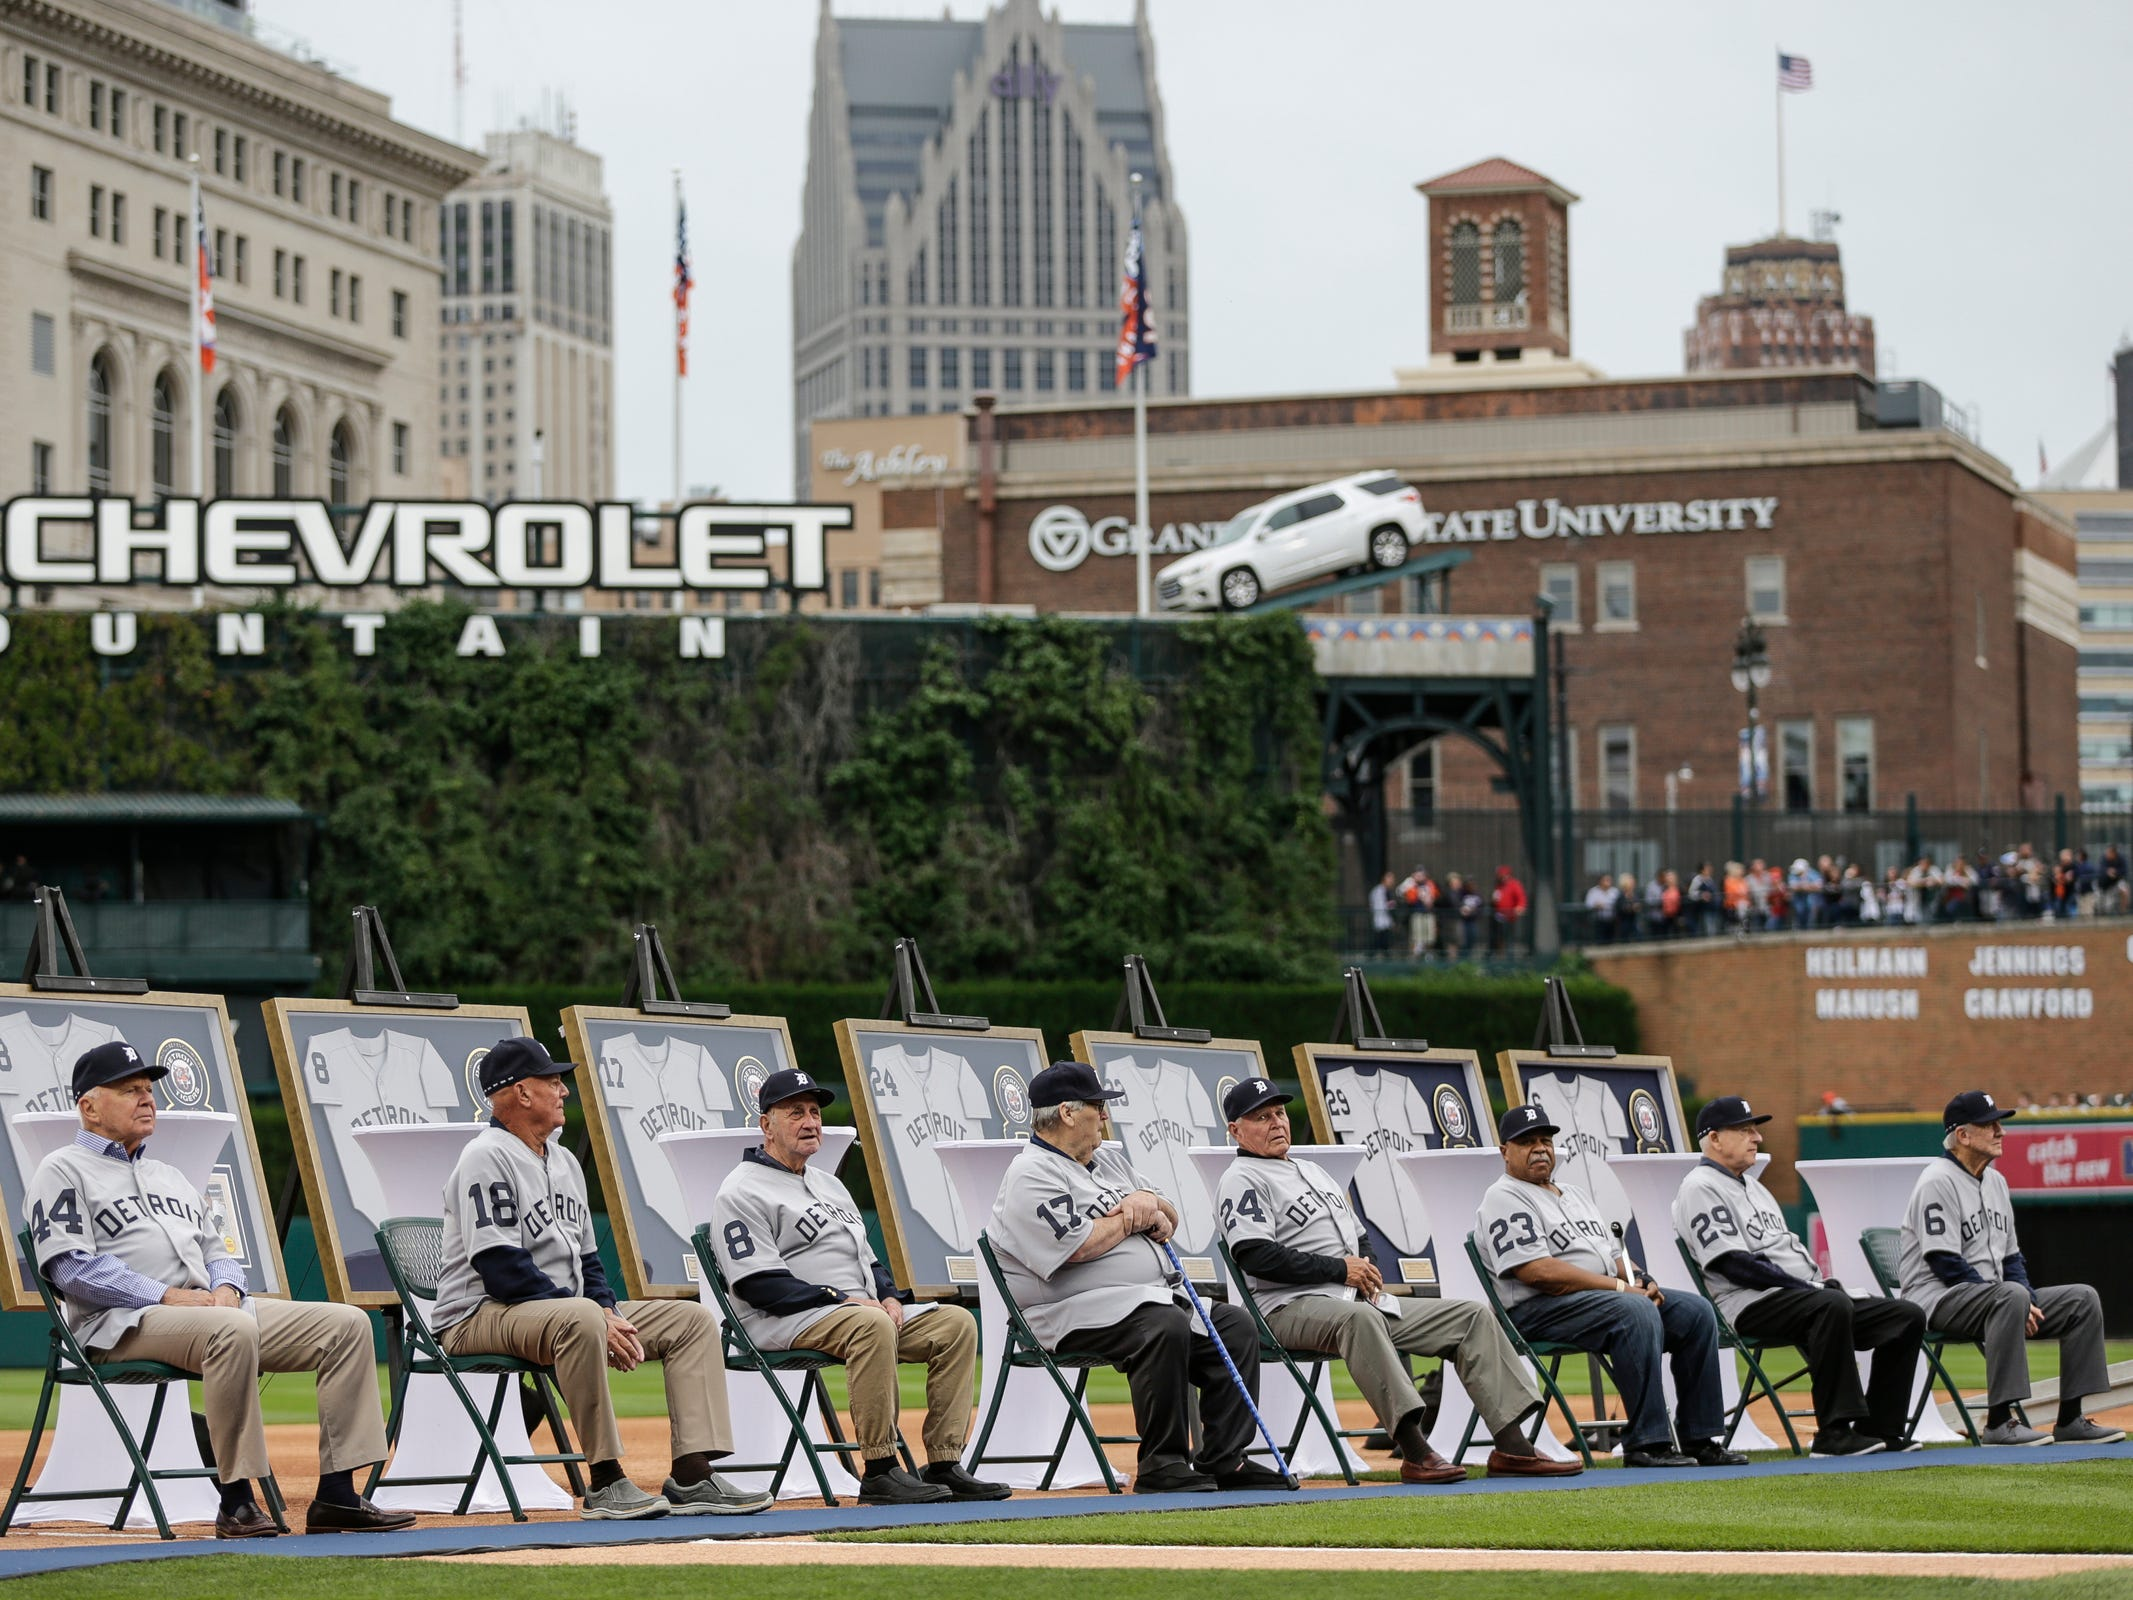 1968 Detroit Tigers World Series championship team is honored at the 50th anniversary of the 1968 World Series championship at Comerica Park in Detroit, Saturday, Sept. 8, 2018.